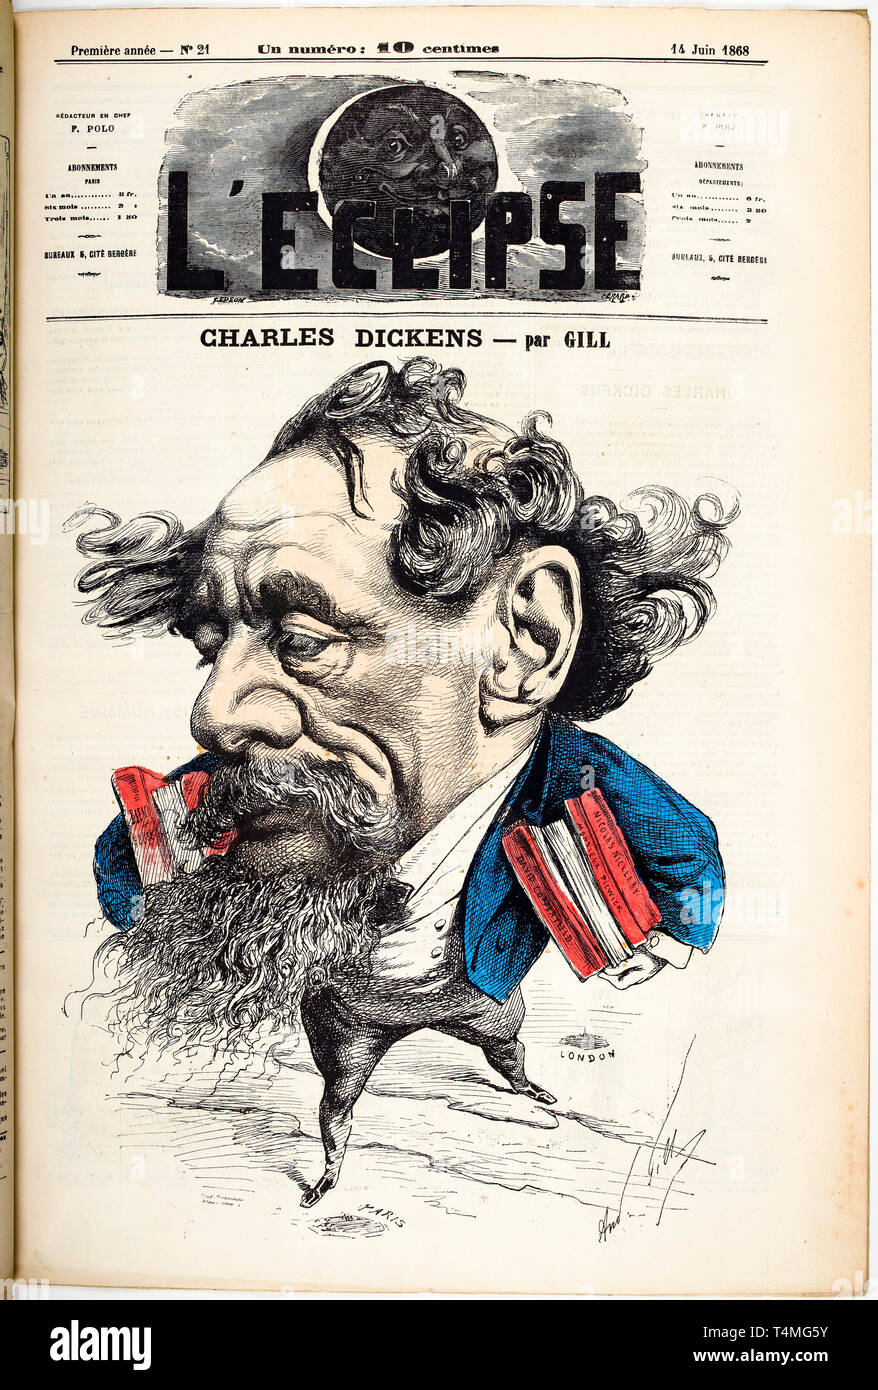 Caricature portrait of Charles Dickens (1812-1870), Cover of L'Eclipse magazine, 14 June 1868, Hand-colored Engraving by André Gill Stock Photo